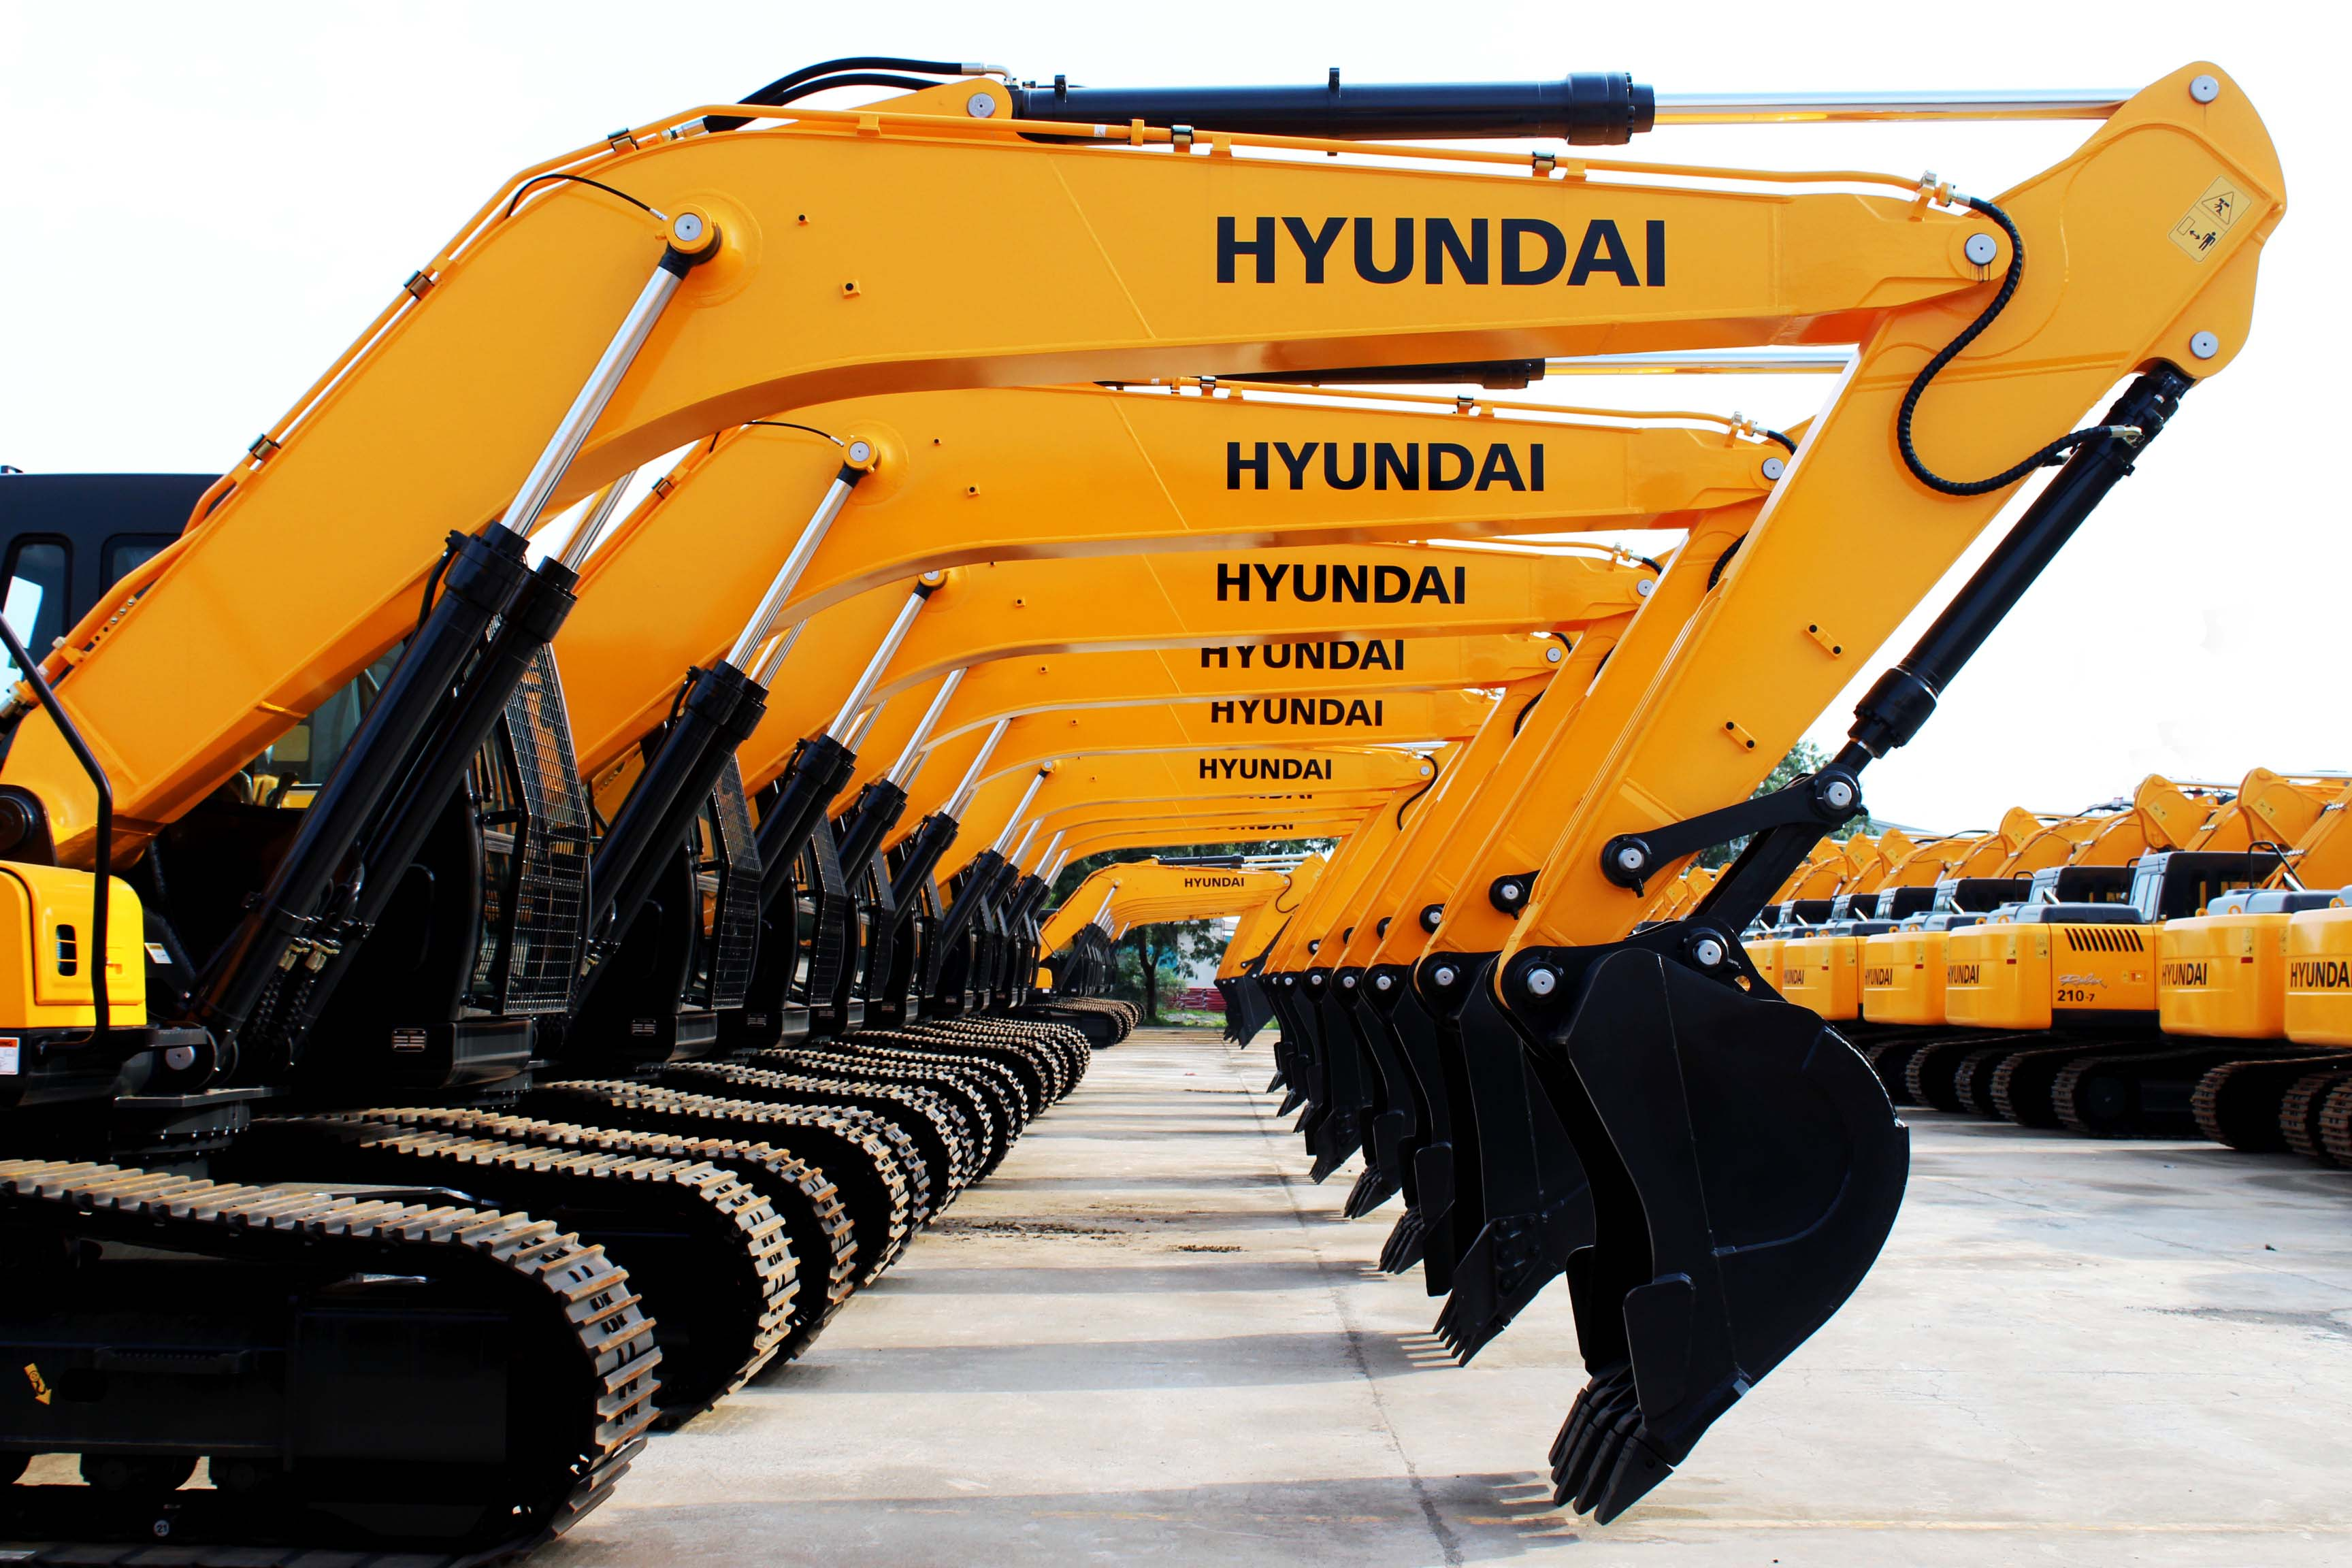 Hyundai Construction Equipment India Sales Up 45% in 2016